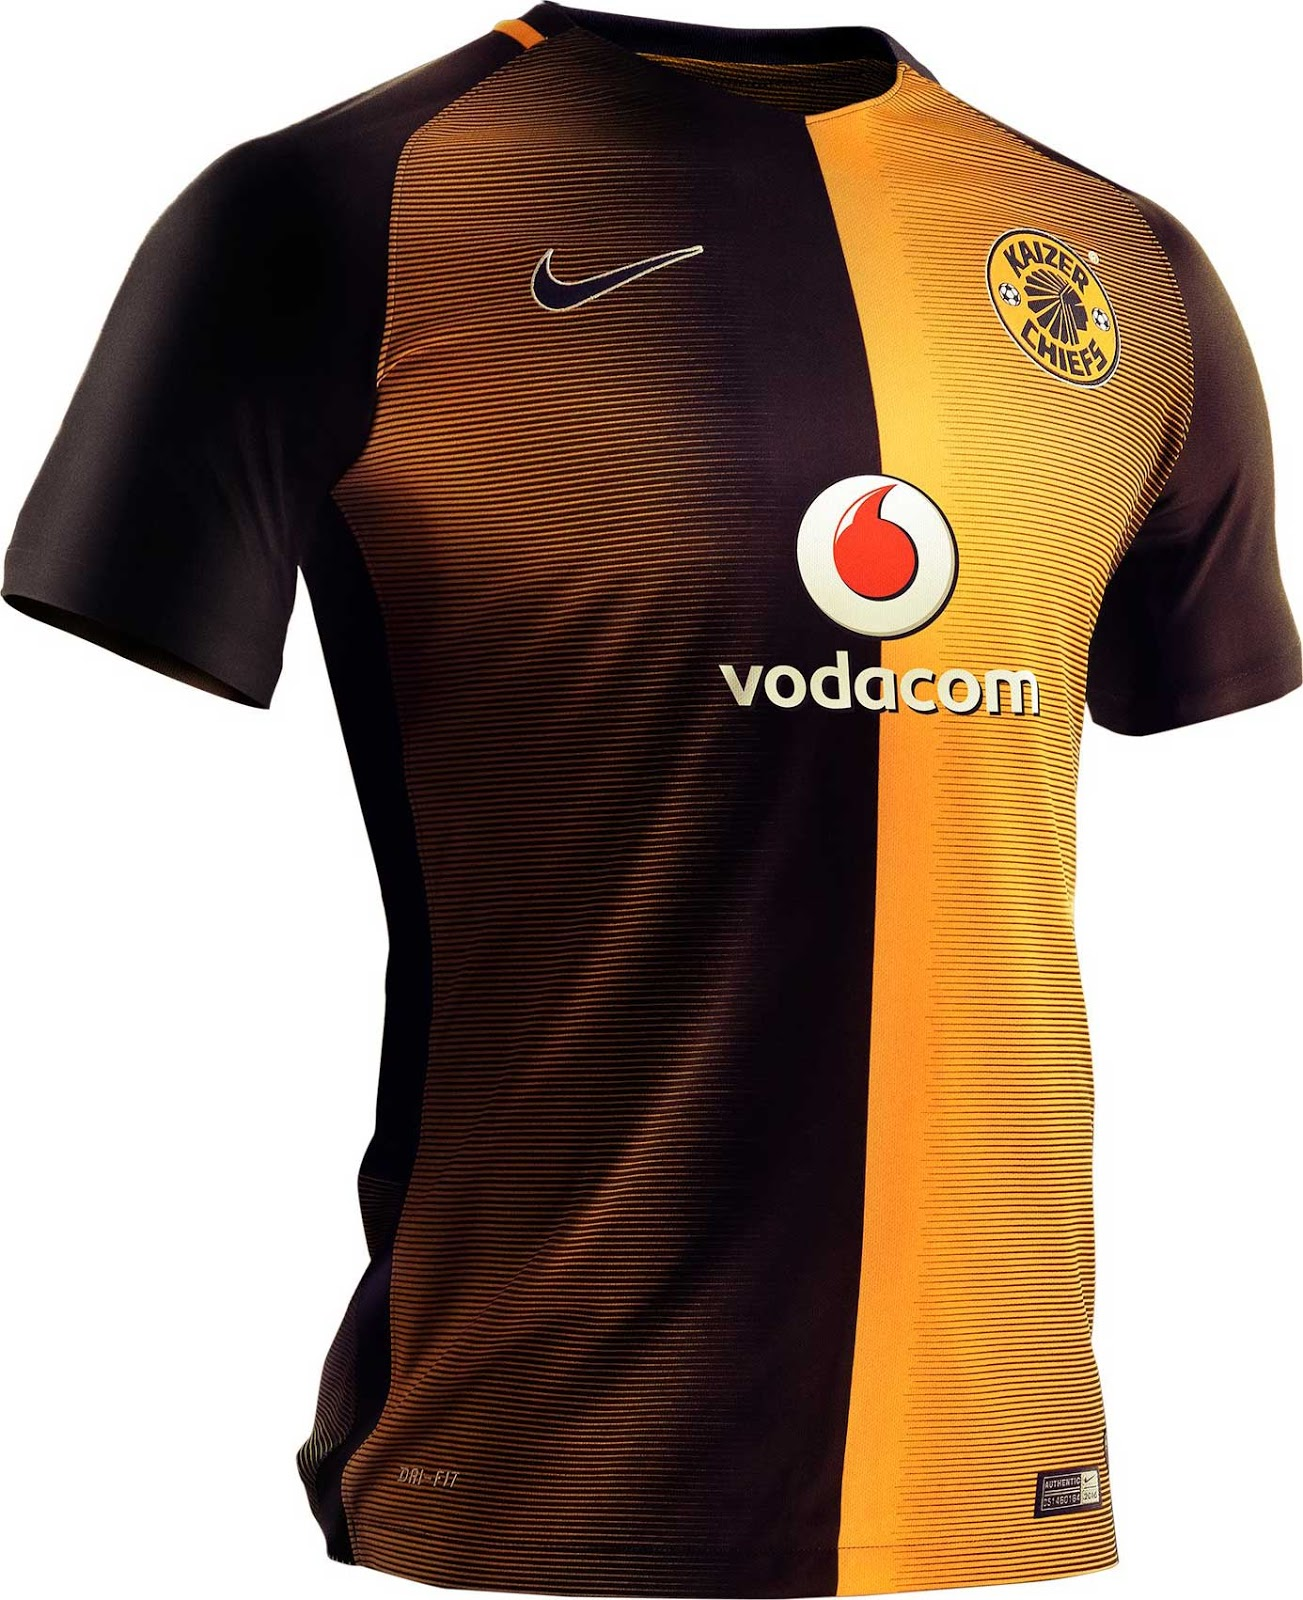 kaizer chiefs 2016 17 kits reveiled